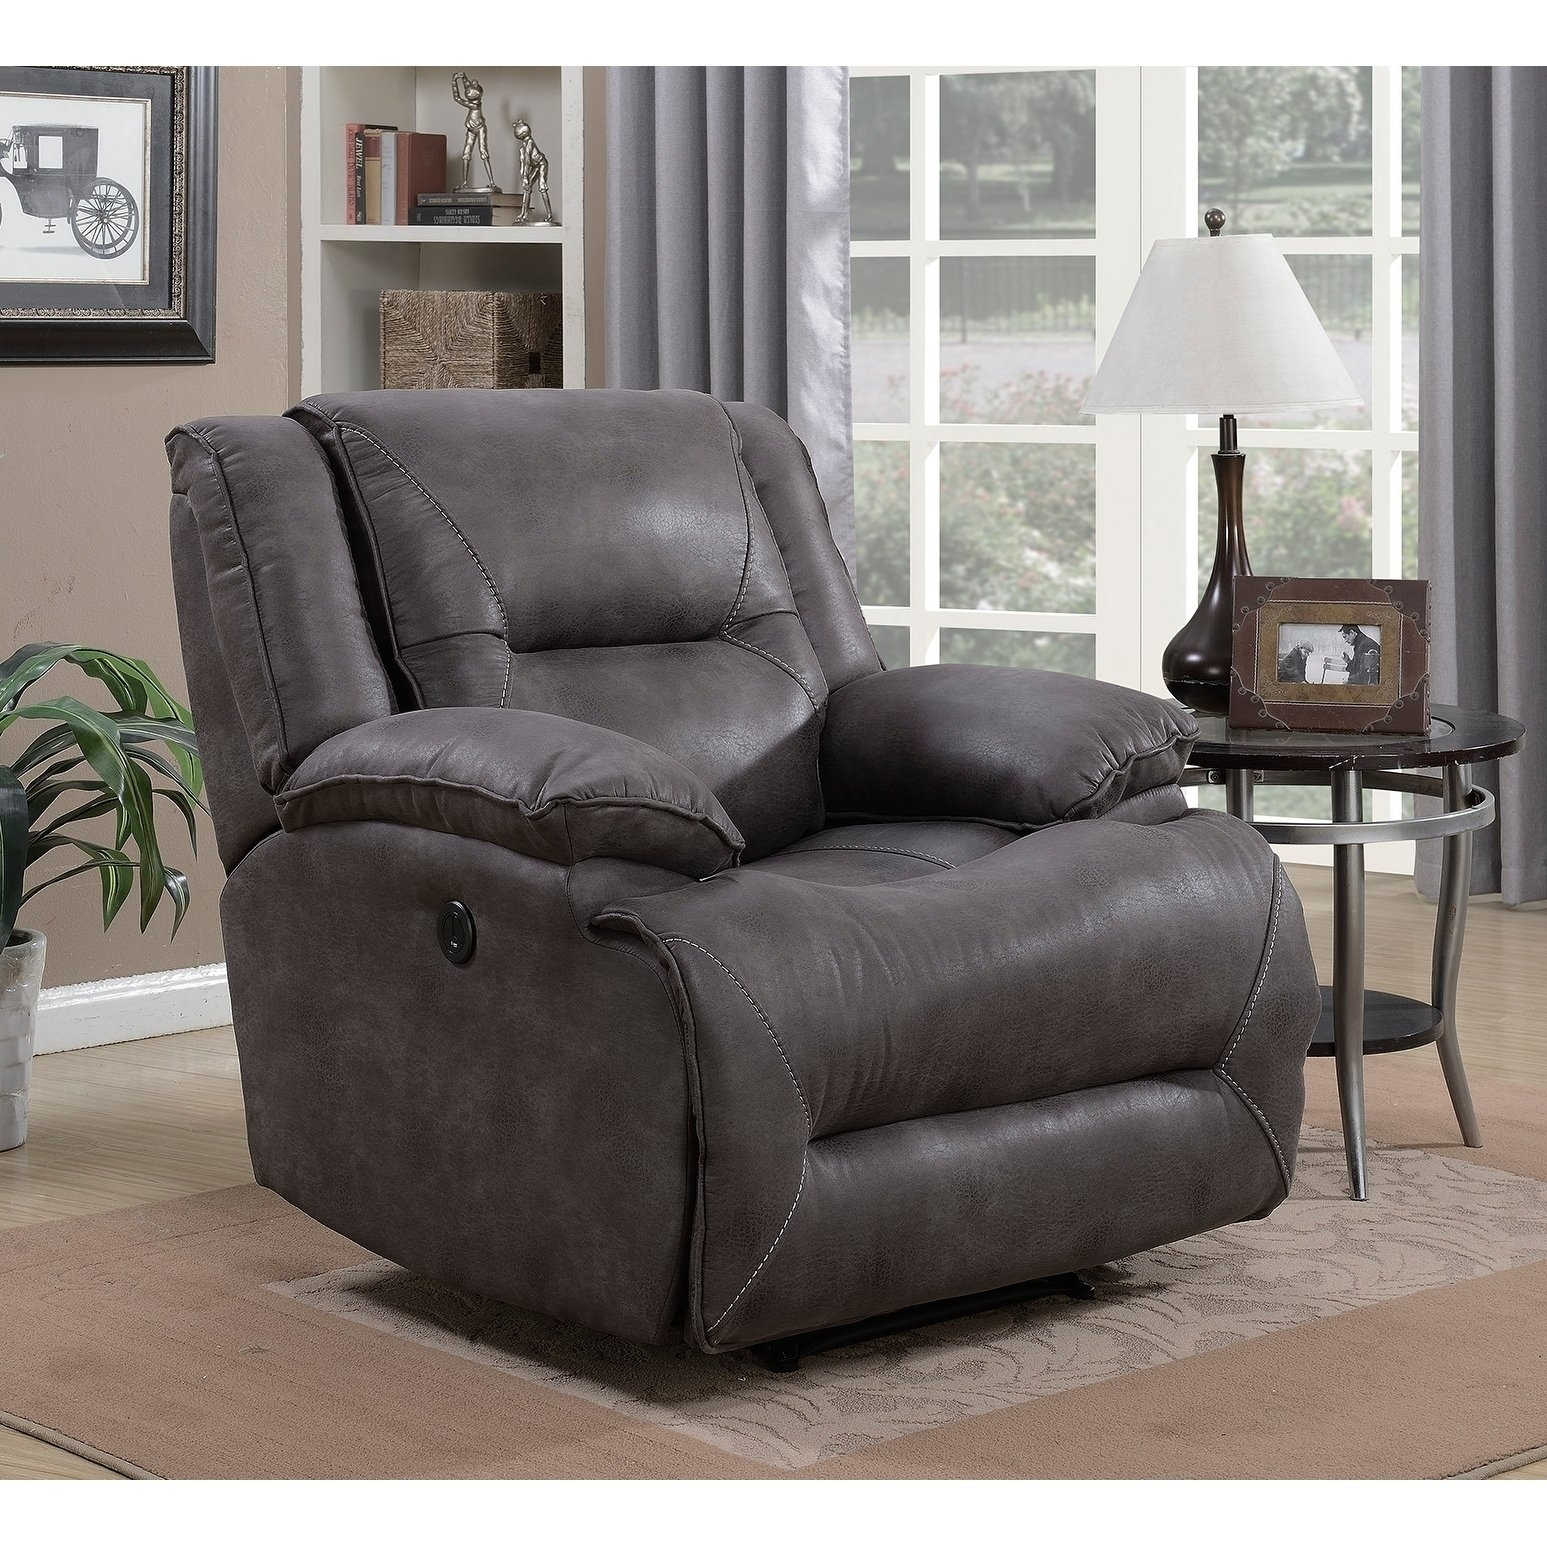 Shop Dylan Power Recliner With Memory Foam Seat Topper And Usb In Travis Dk Grey Leather 6 Piece Power Reclining Sectionals With Power Headrest & Usb (Image 20 of 25)